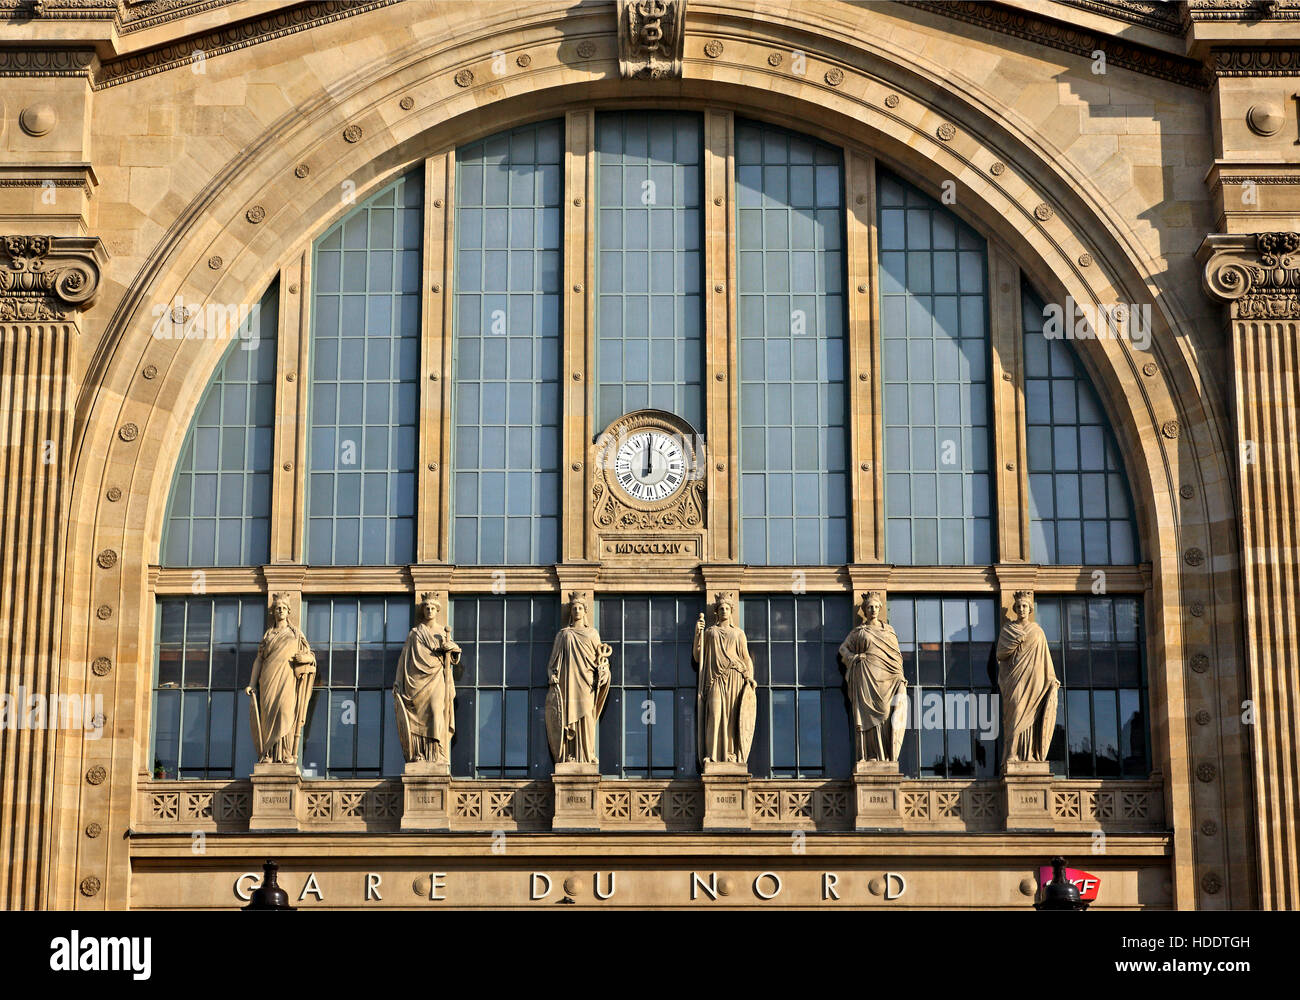 'Detail' from the facade of Gare du Nord ('North Station') the bussiest train station in Europe. - Stock Image